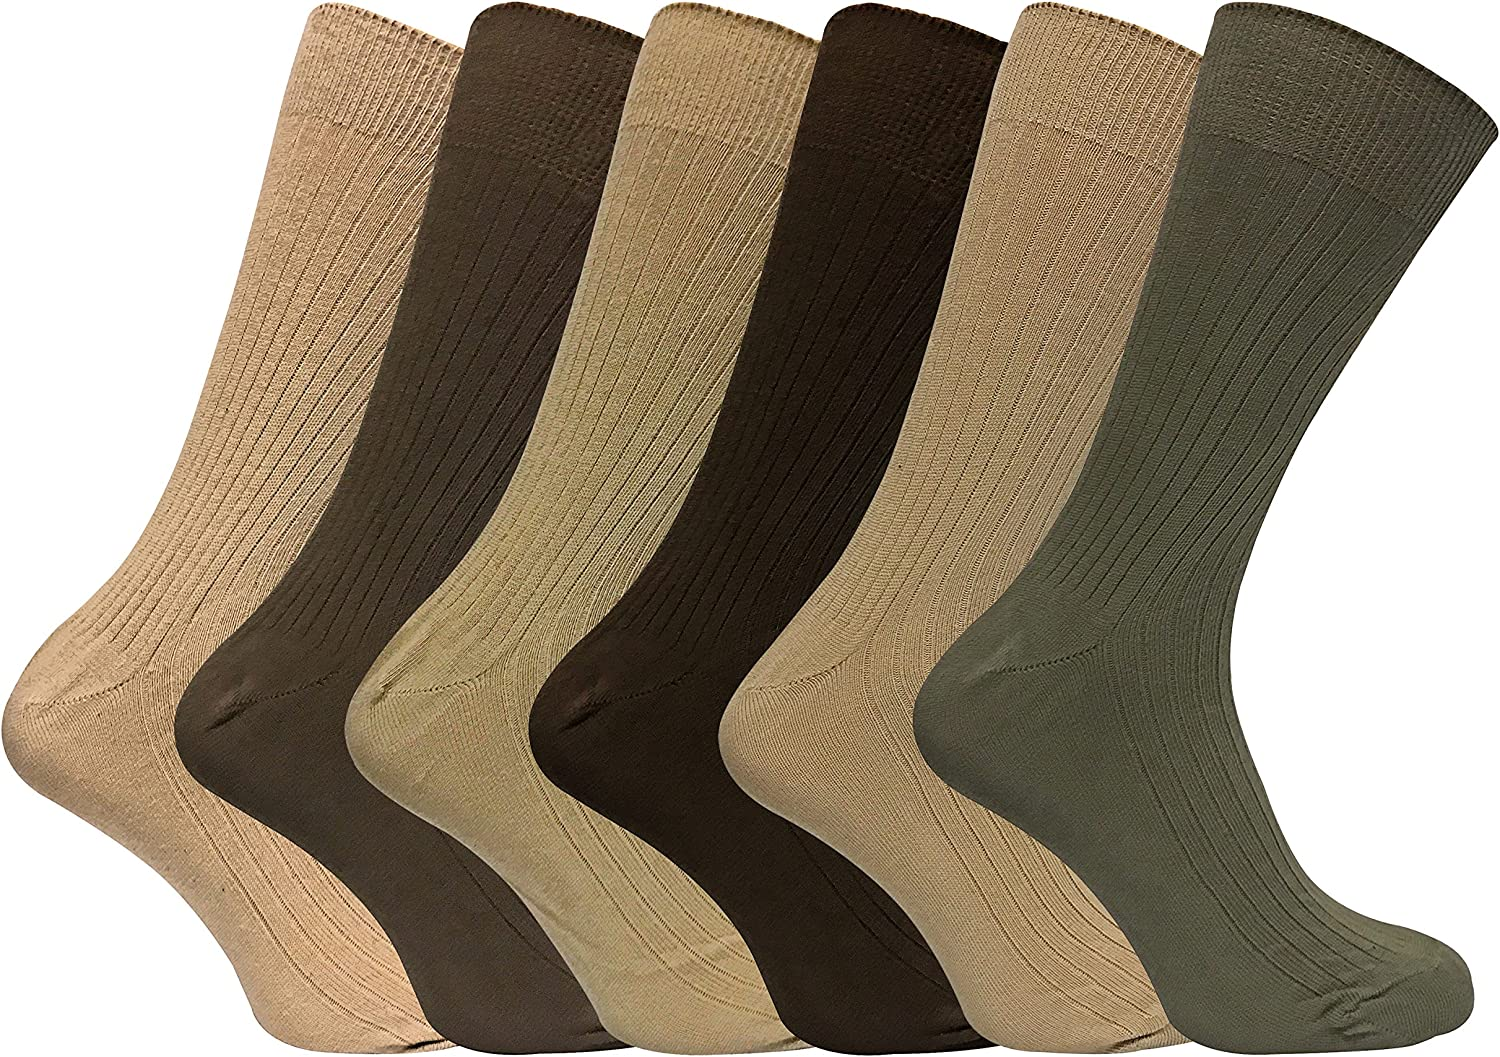 Mens 6 Pack Thin 100% Cotton Lightweight Breathable Ribbed Crew Dress Socks